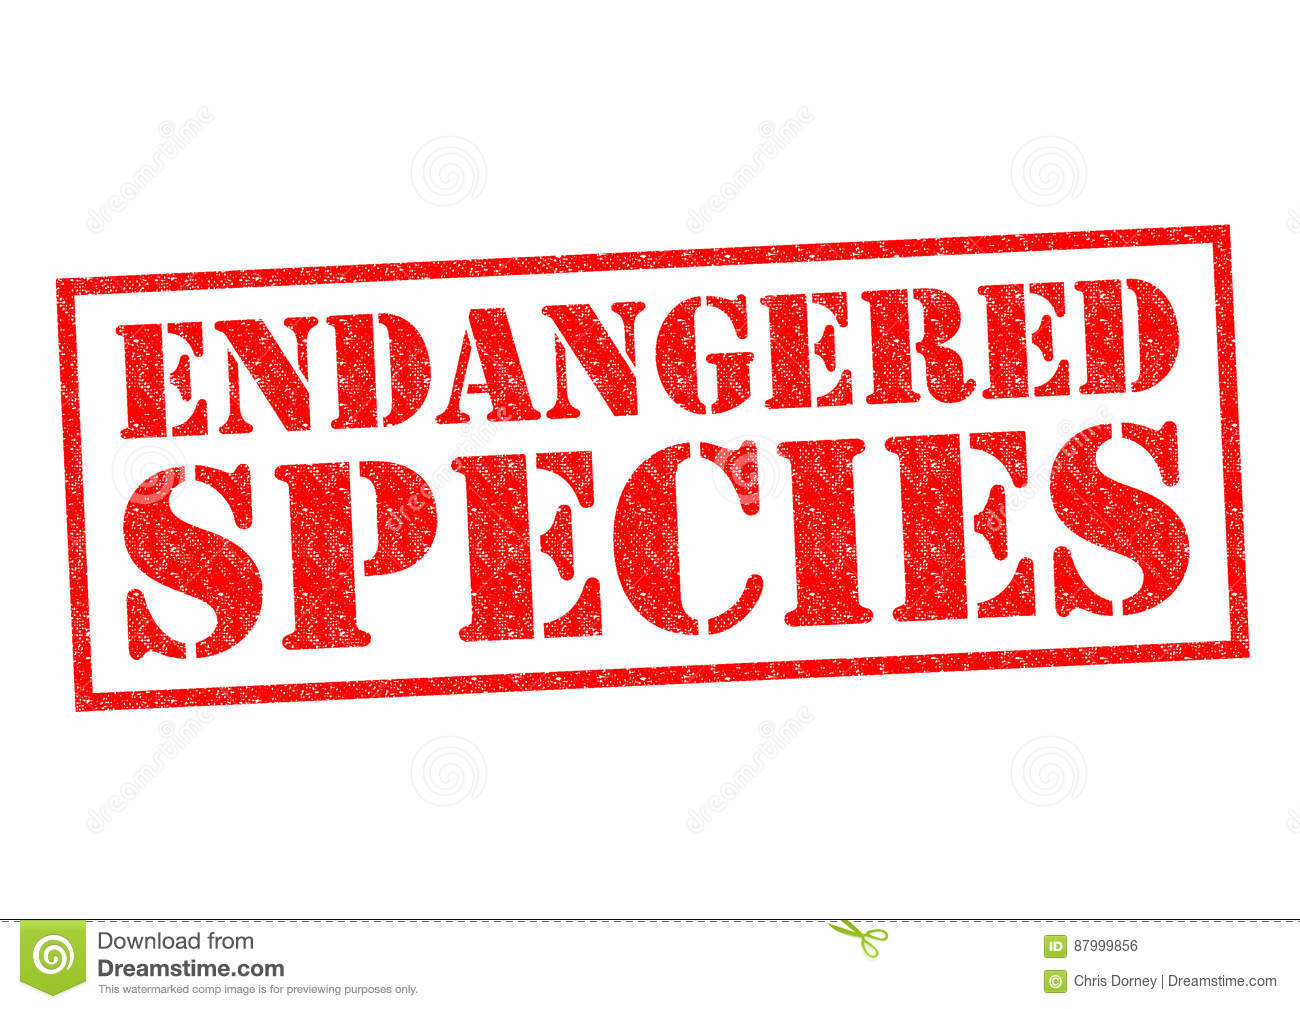 Endangered species stock illustrations 2364 endangered species endangered species stock illustrations 2364 endangered species stock illustrations vectors clipart dreamstime biocorpaavc Image collections